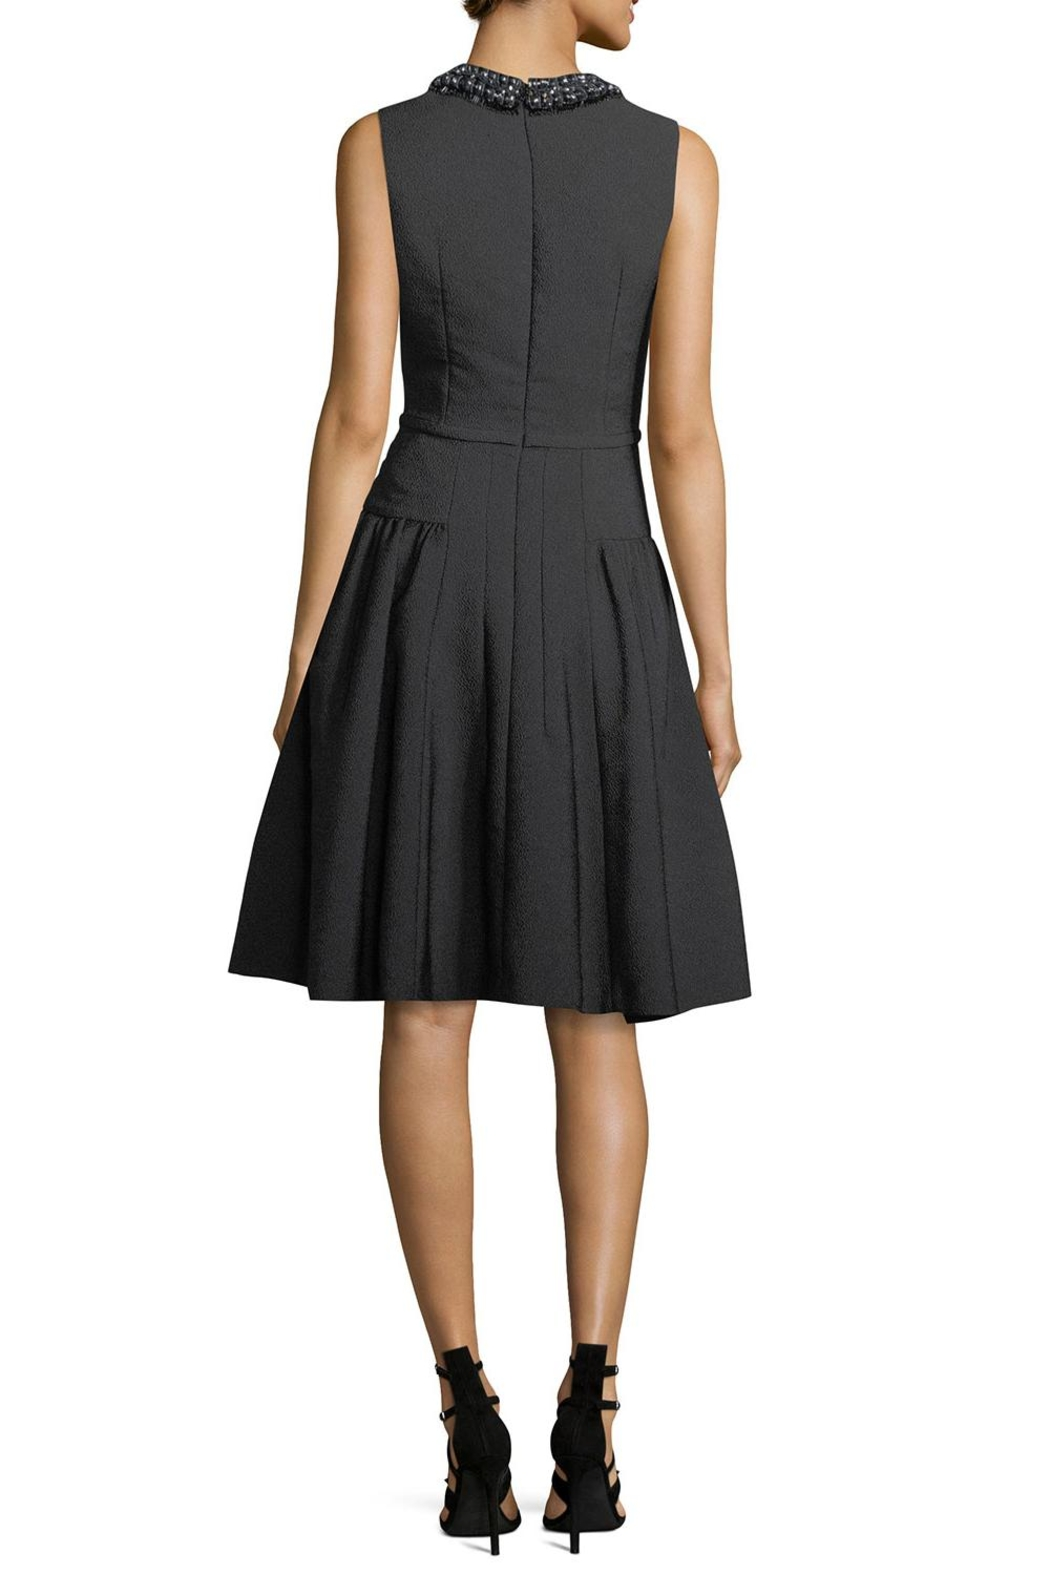 Carmen Marc Valvo Sleeveless Crepe Dress - Front Full Image